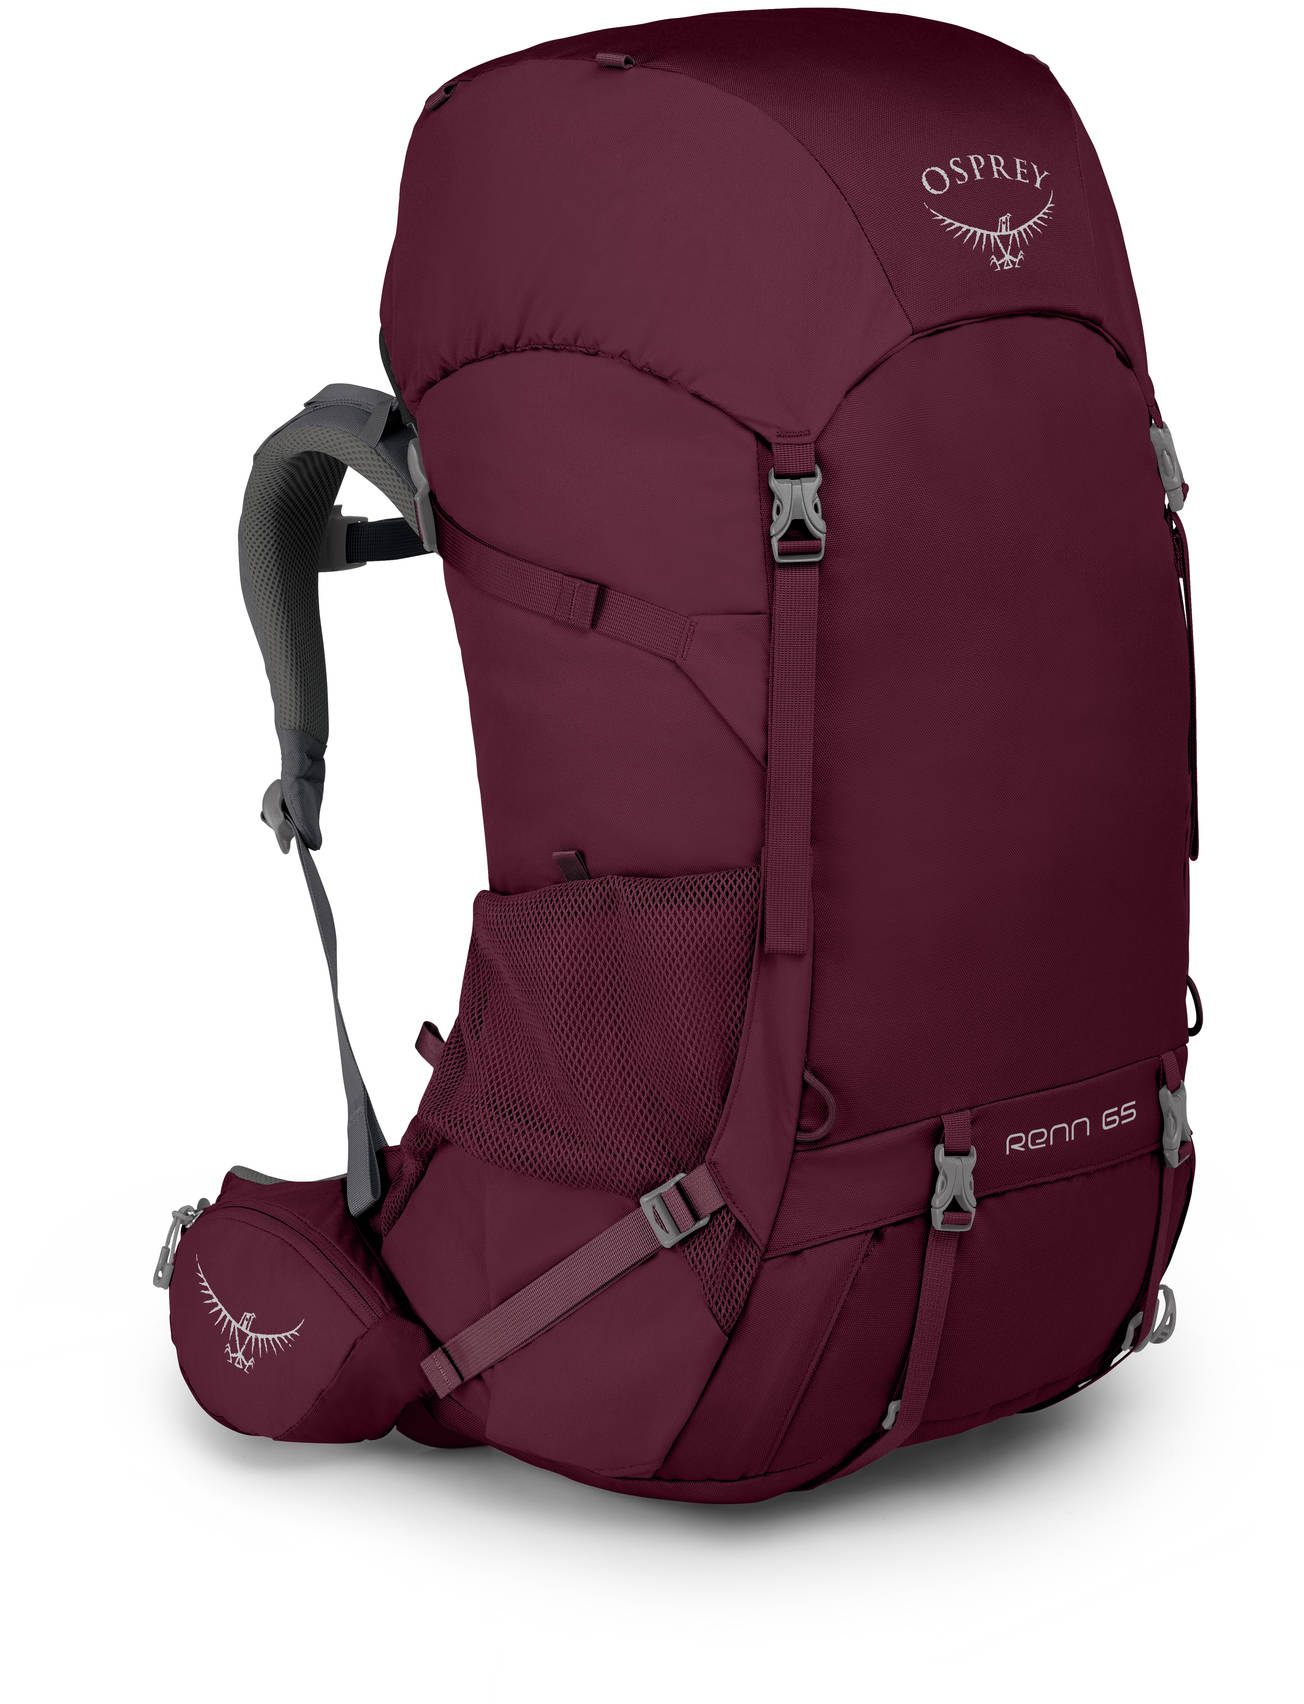 Renn Рюкзак туристический Osprey Renn 65 Aurora Purple (2019) Renn_65_S19_Side_Aurora_Purple_web.jpg